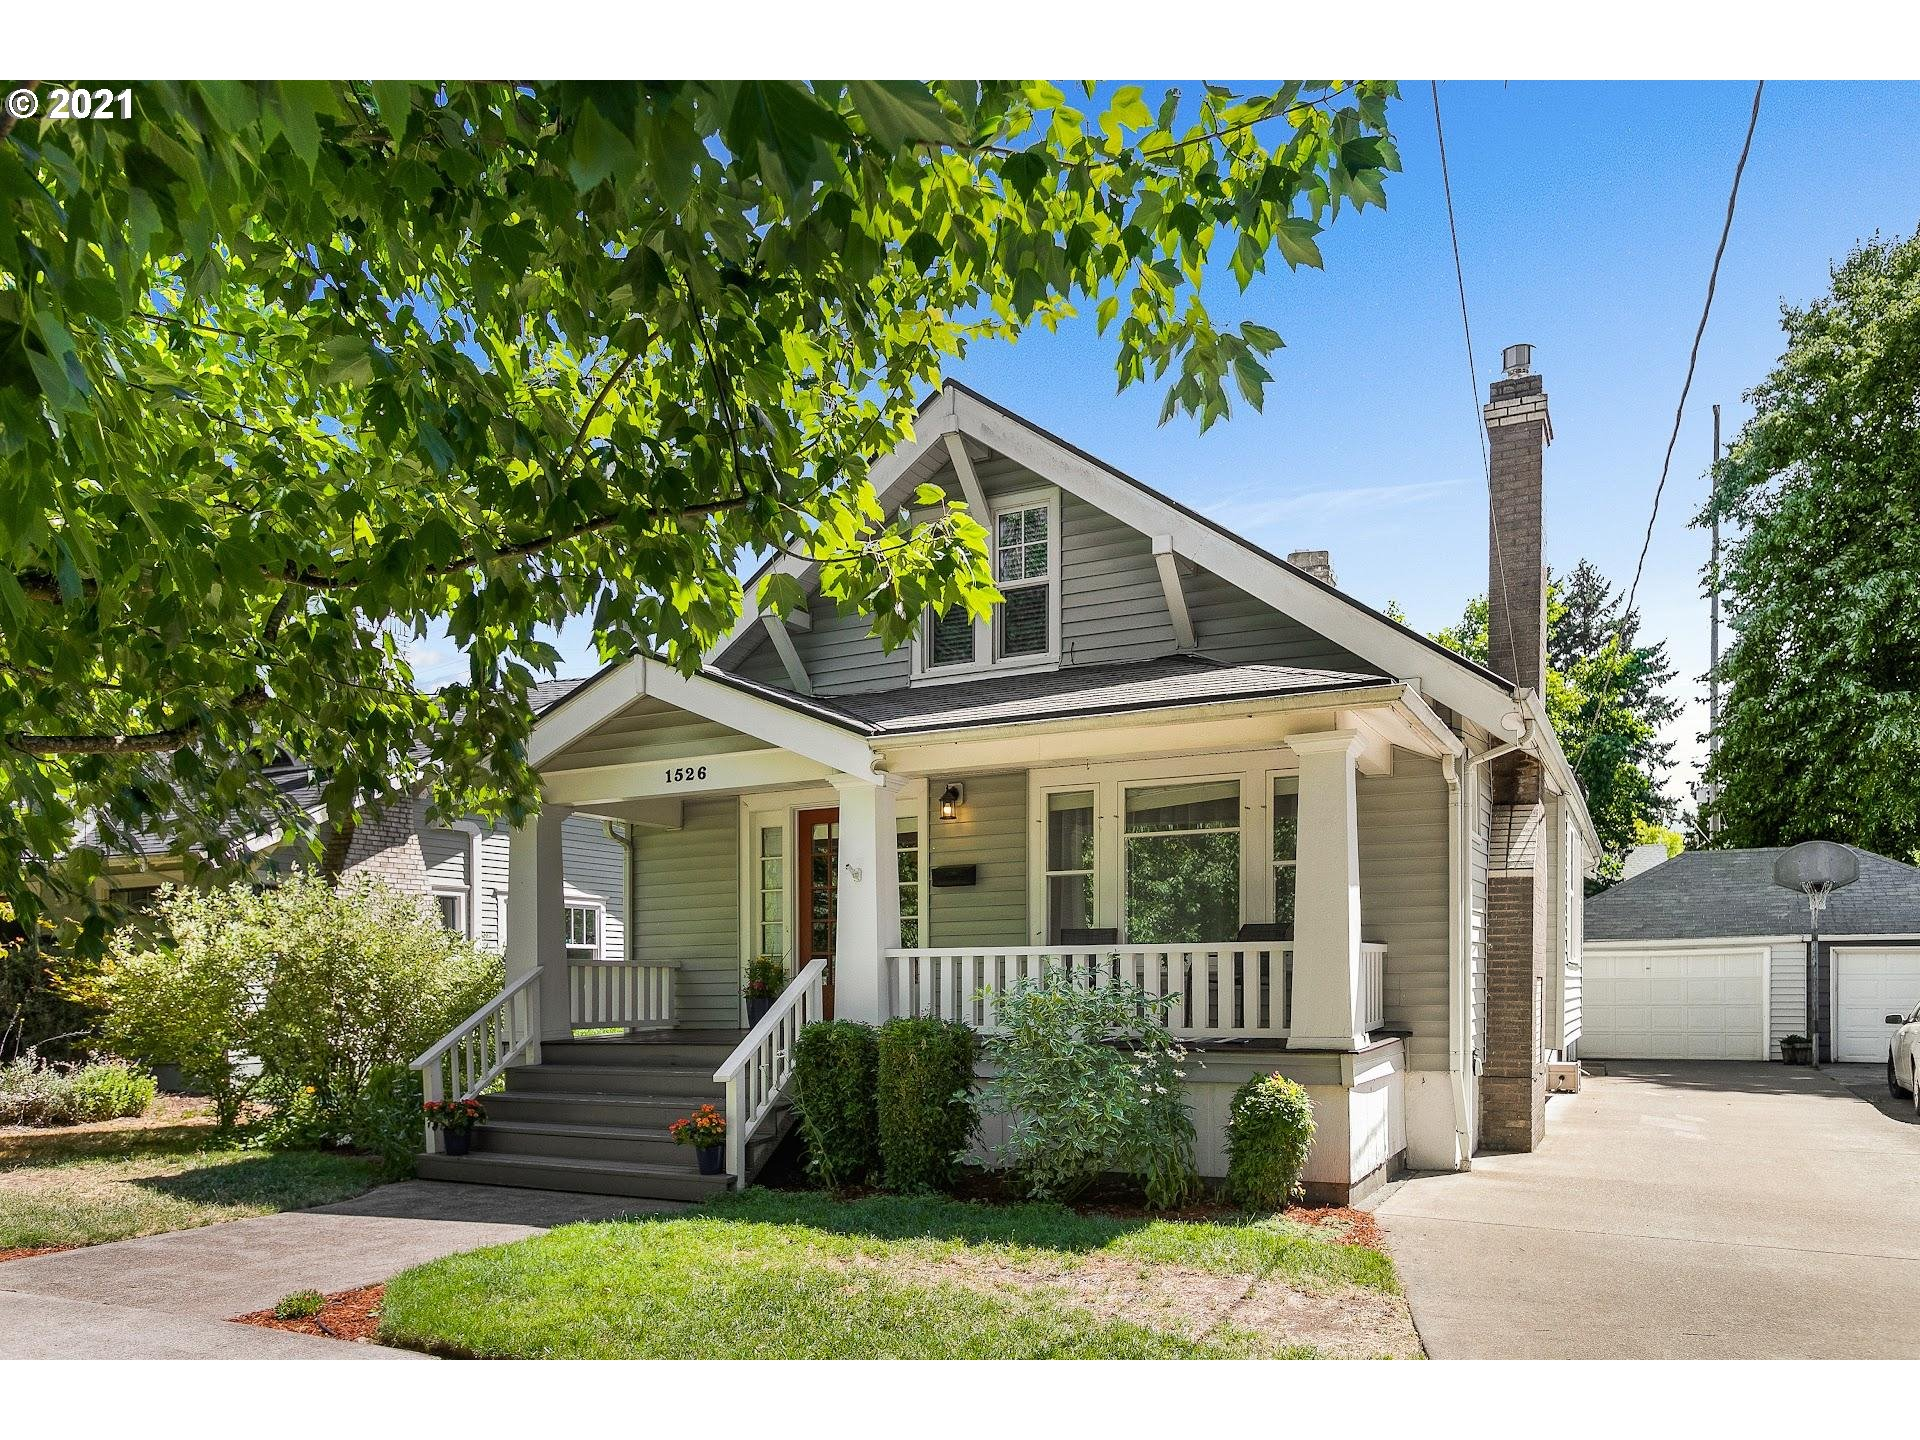 Craftsman bungalow nestled on tree lined street of Rose City.  Idyllic front porch greets you before walking into the light-filled living room. Formal dining + charming updated eat-in kitchen w/vintage flair. Expansive family room, bar area, office space down, plus 4th bedrooms, full bath, HUGE laundry room. 550 sf owners bedroom w/sitting area and mini split AC/heat. Smart mudroom off deck, perfect for Portland's wet seasons. Lush backyard w/deck, patio w/gas fire pit, a gem of a backyard.